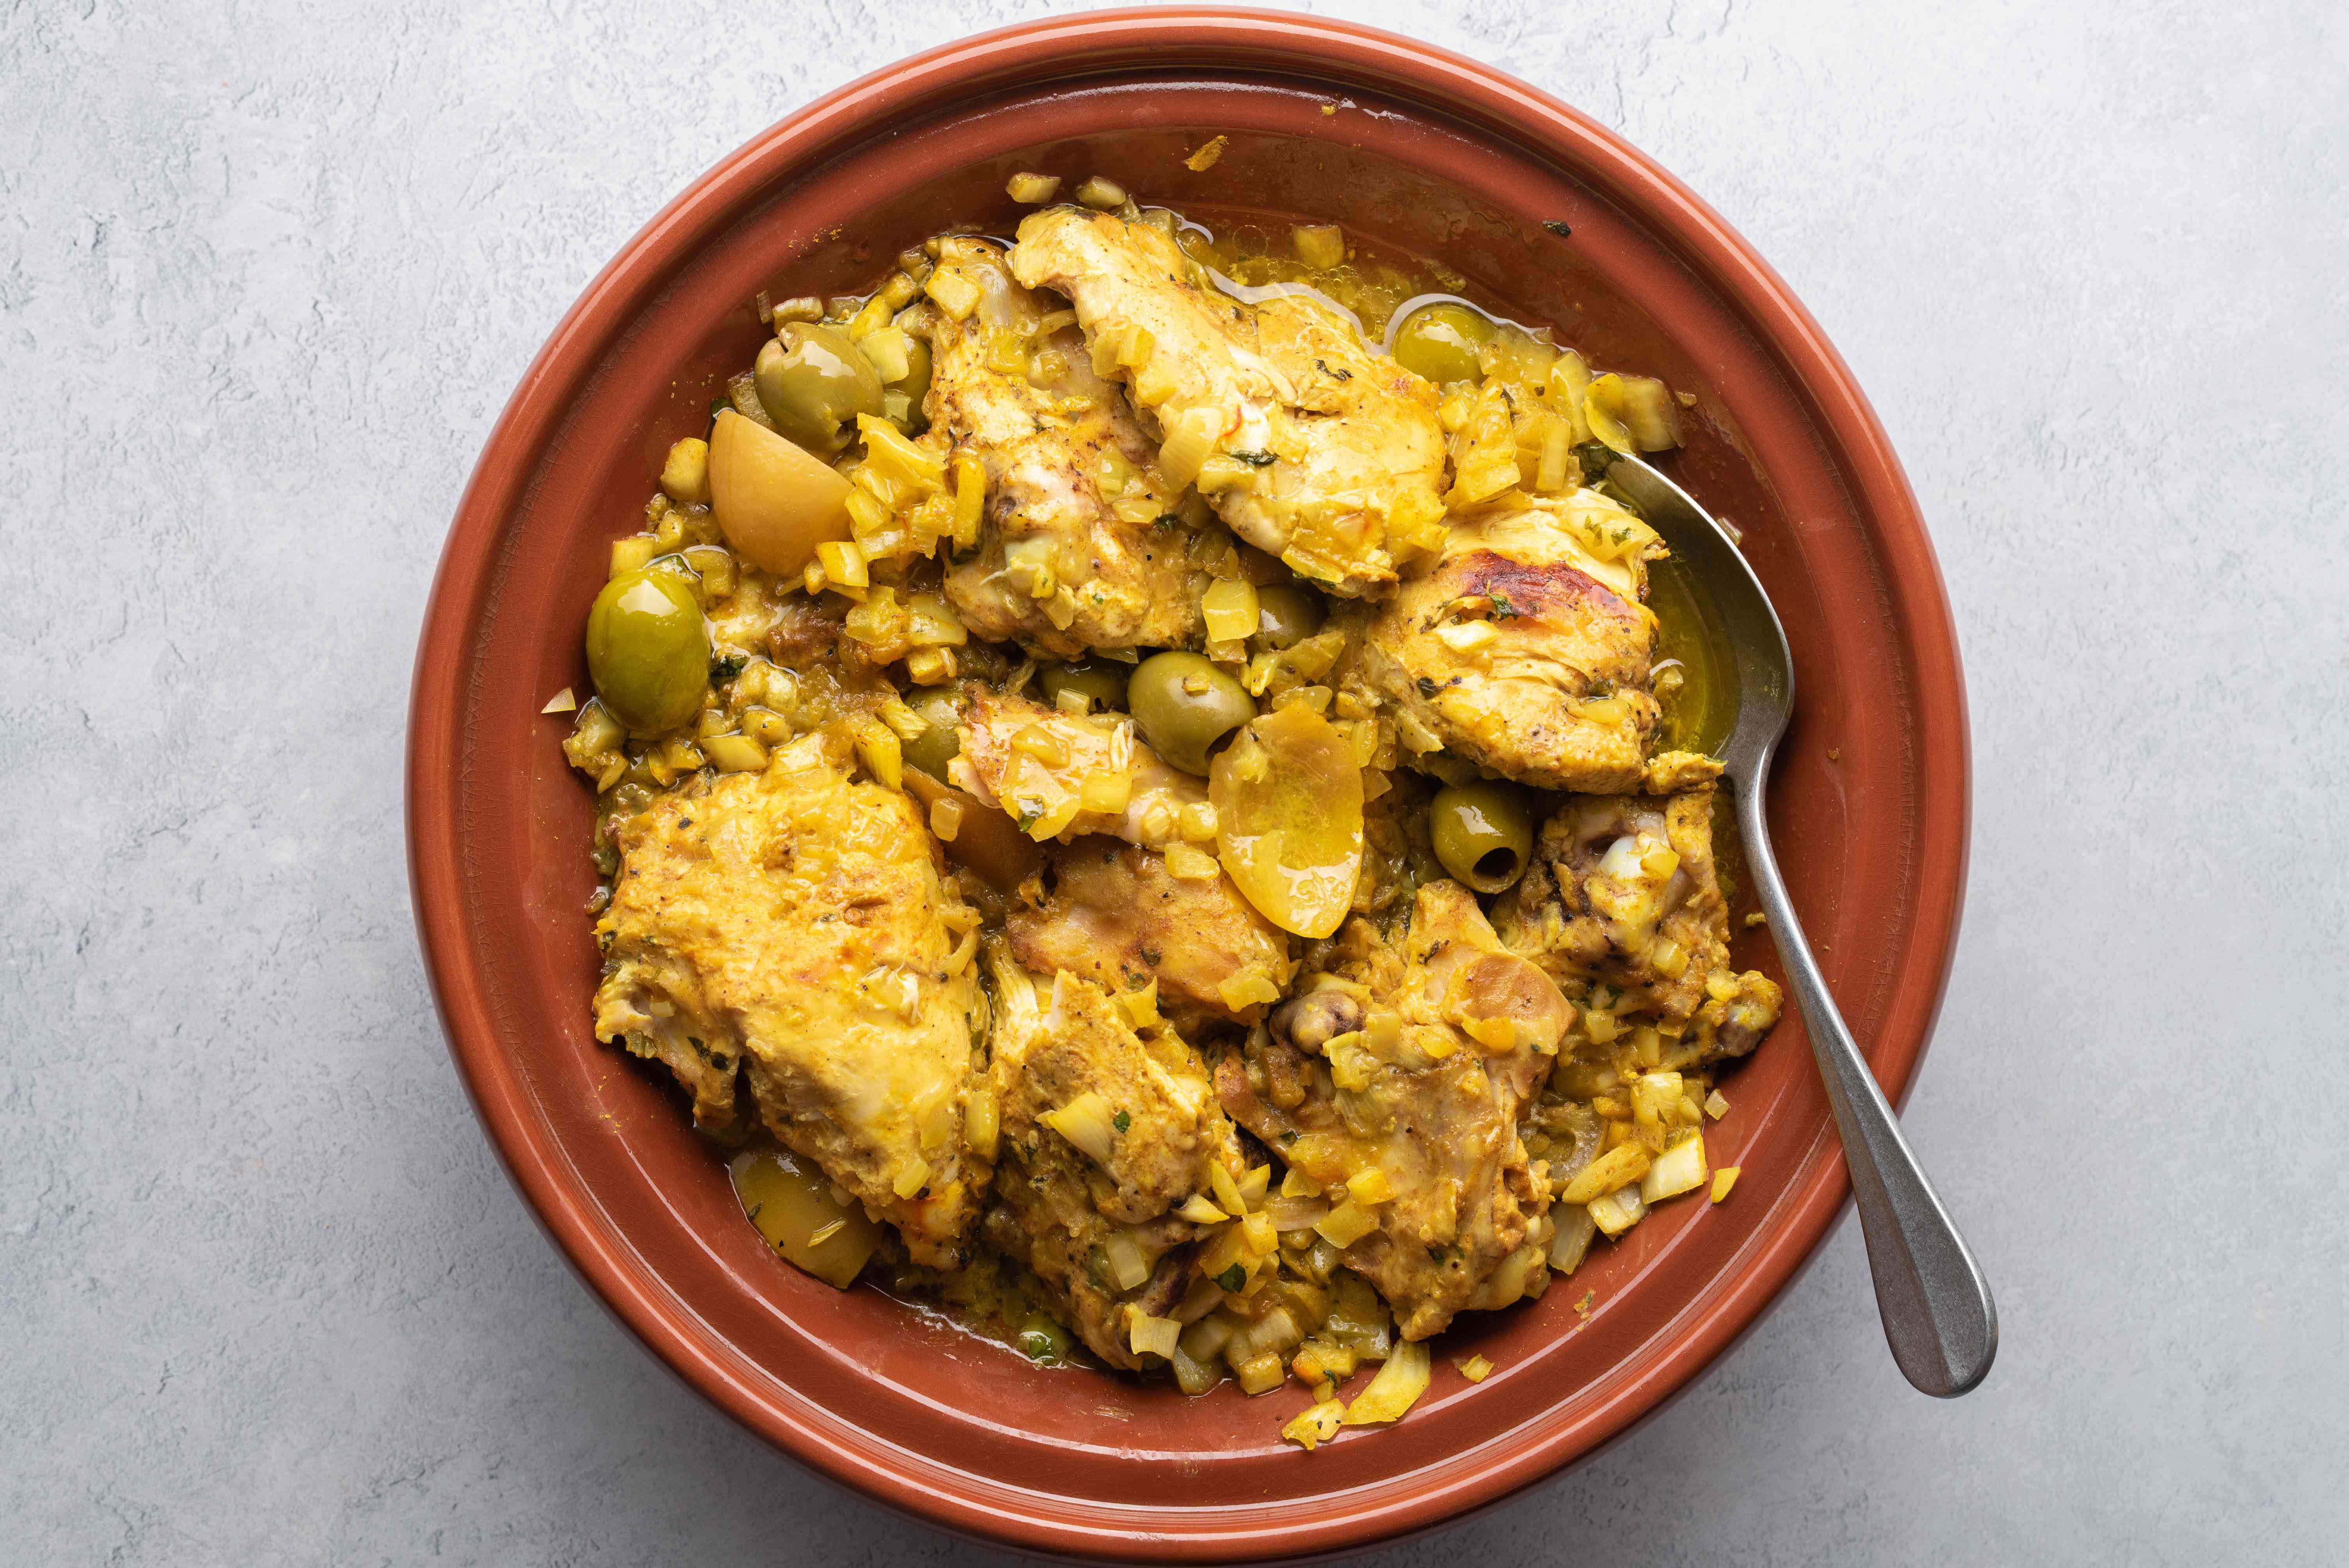 cooked chicken in a Tagine